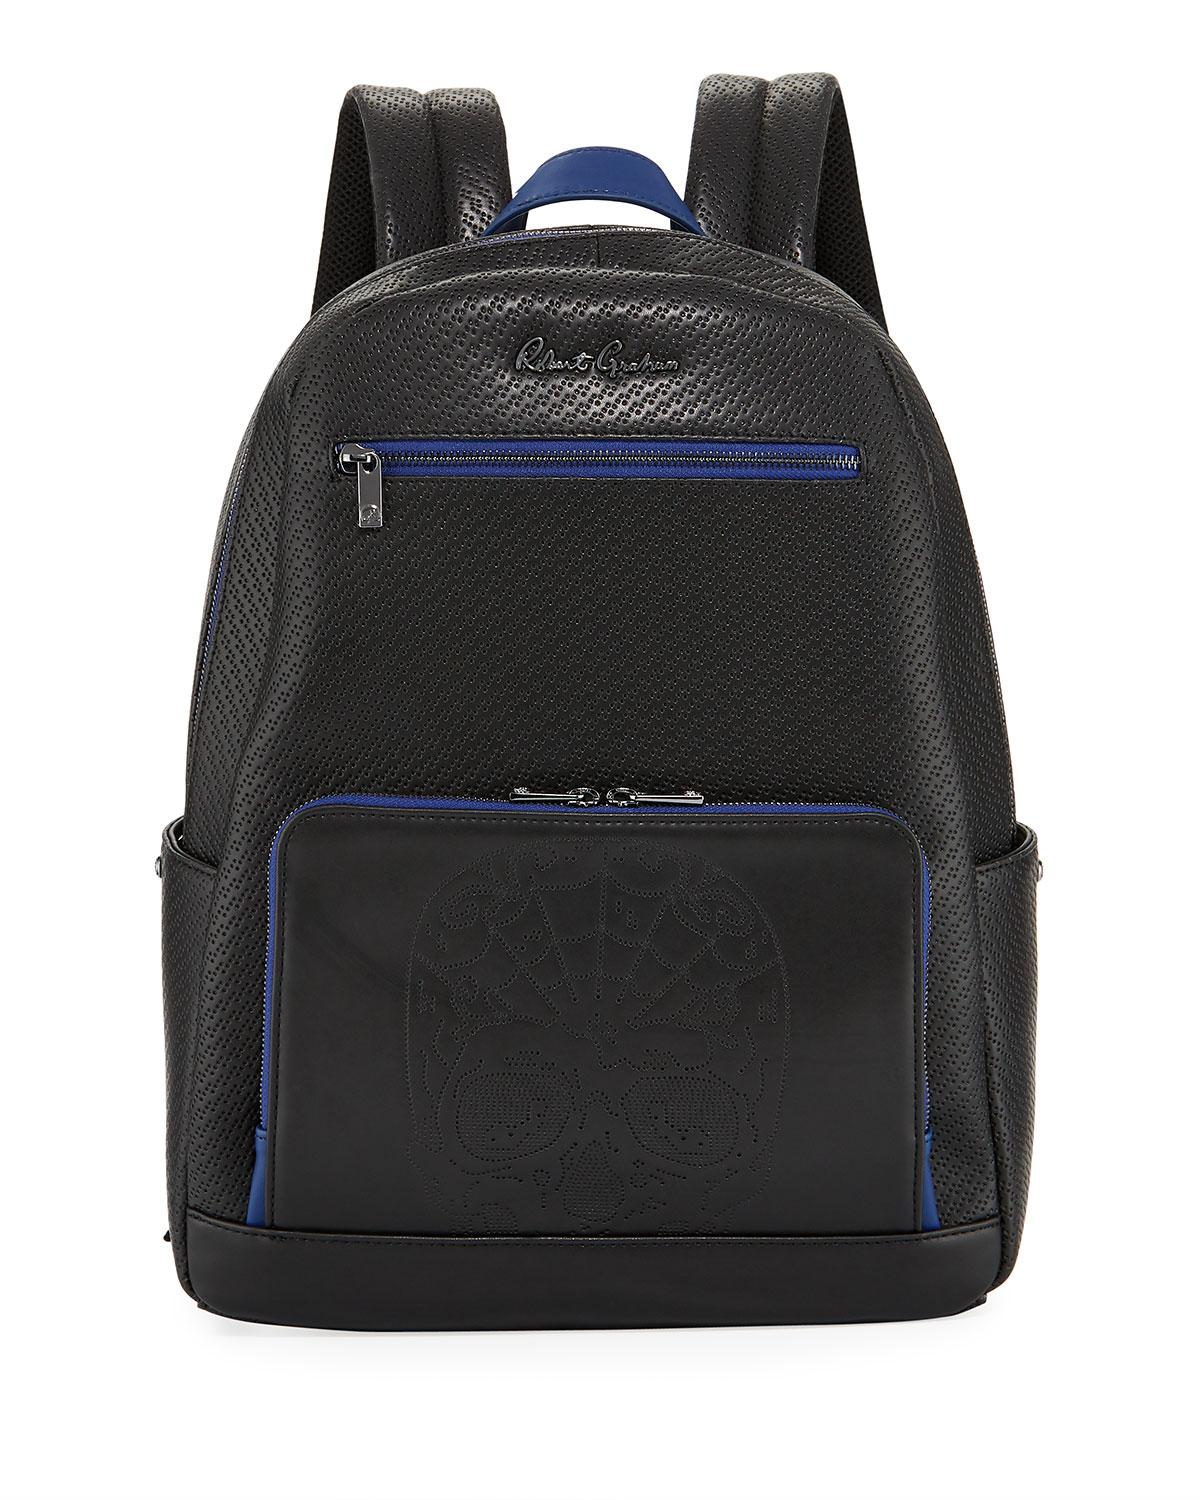 Robert Graham Keller Hill Perforated Skull Faux Backpack In Black